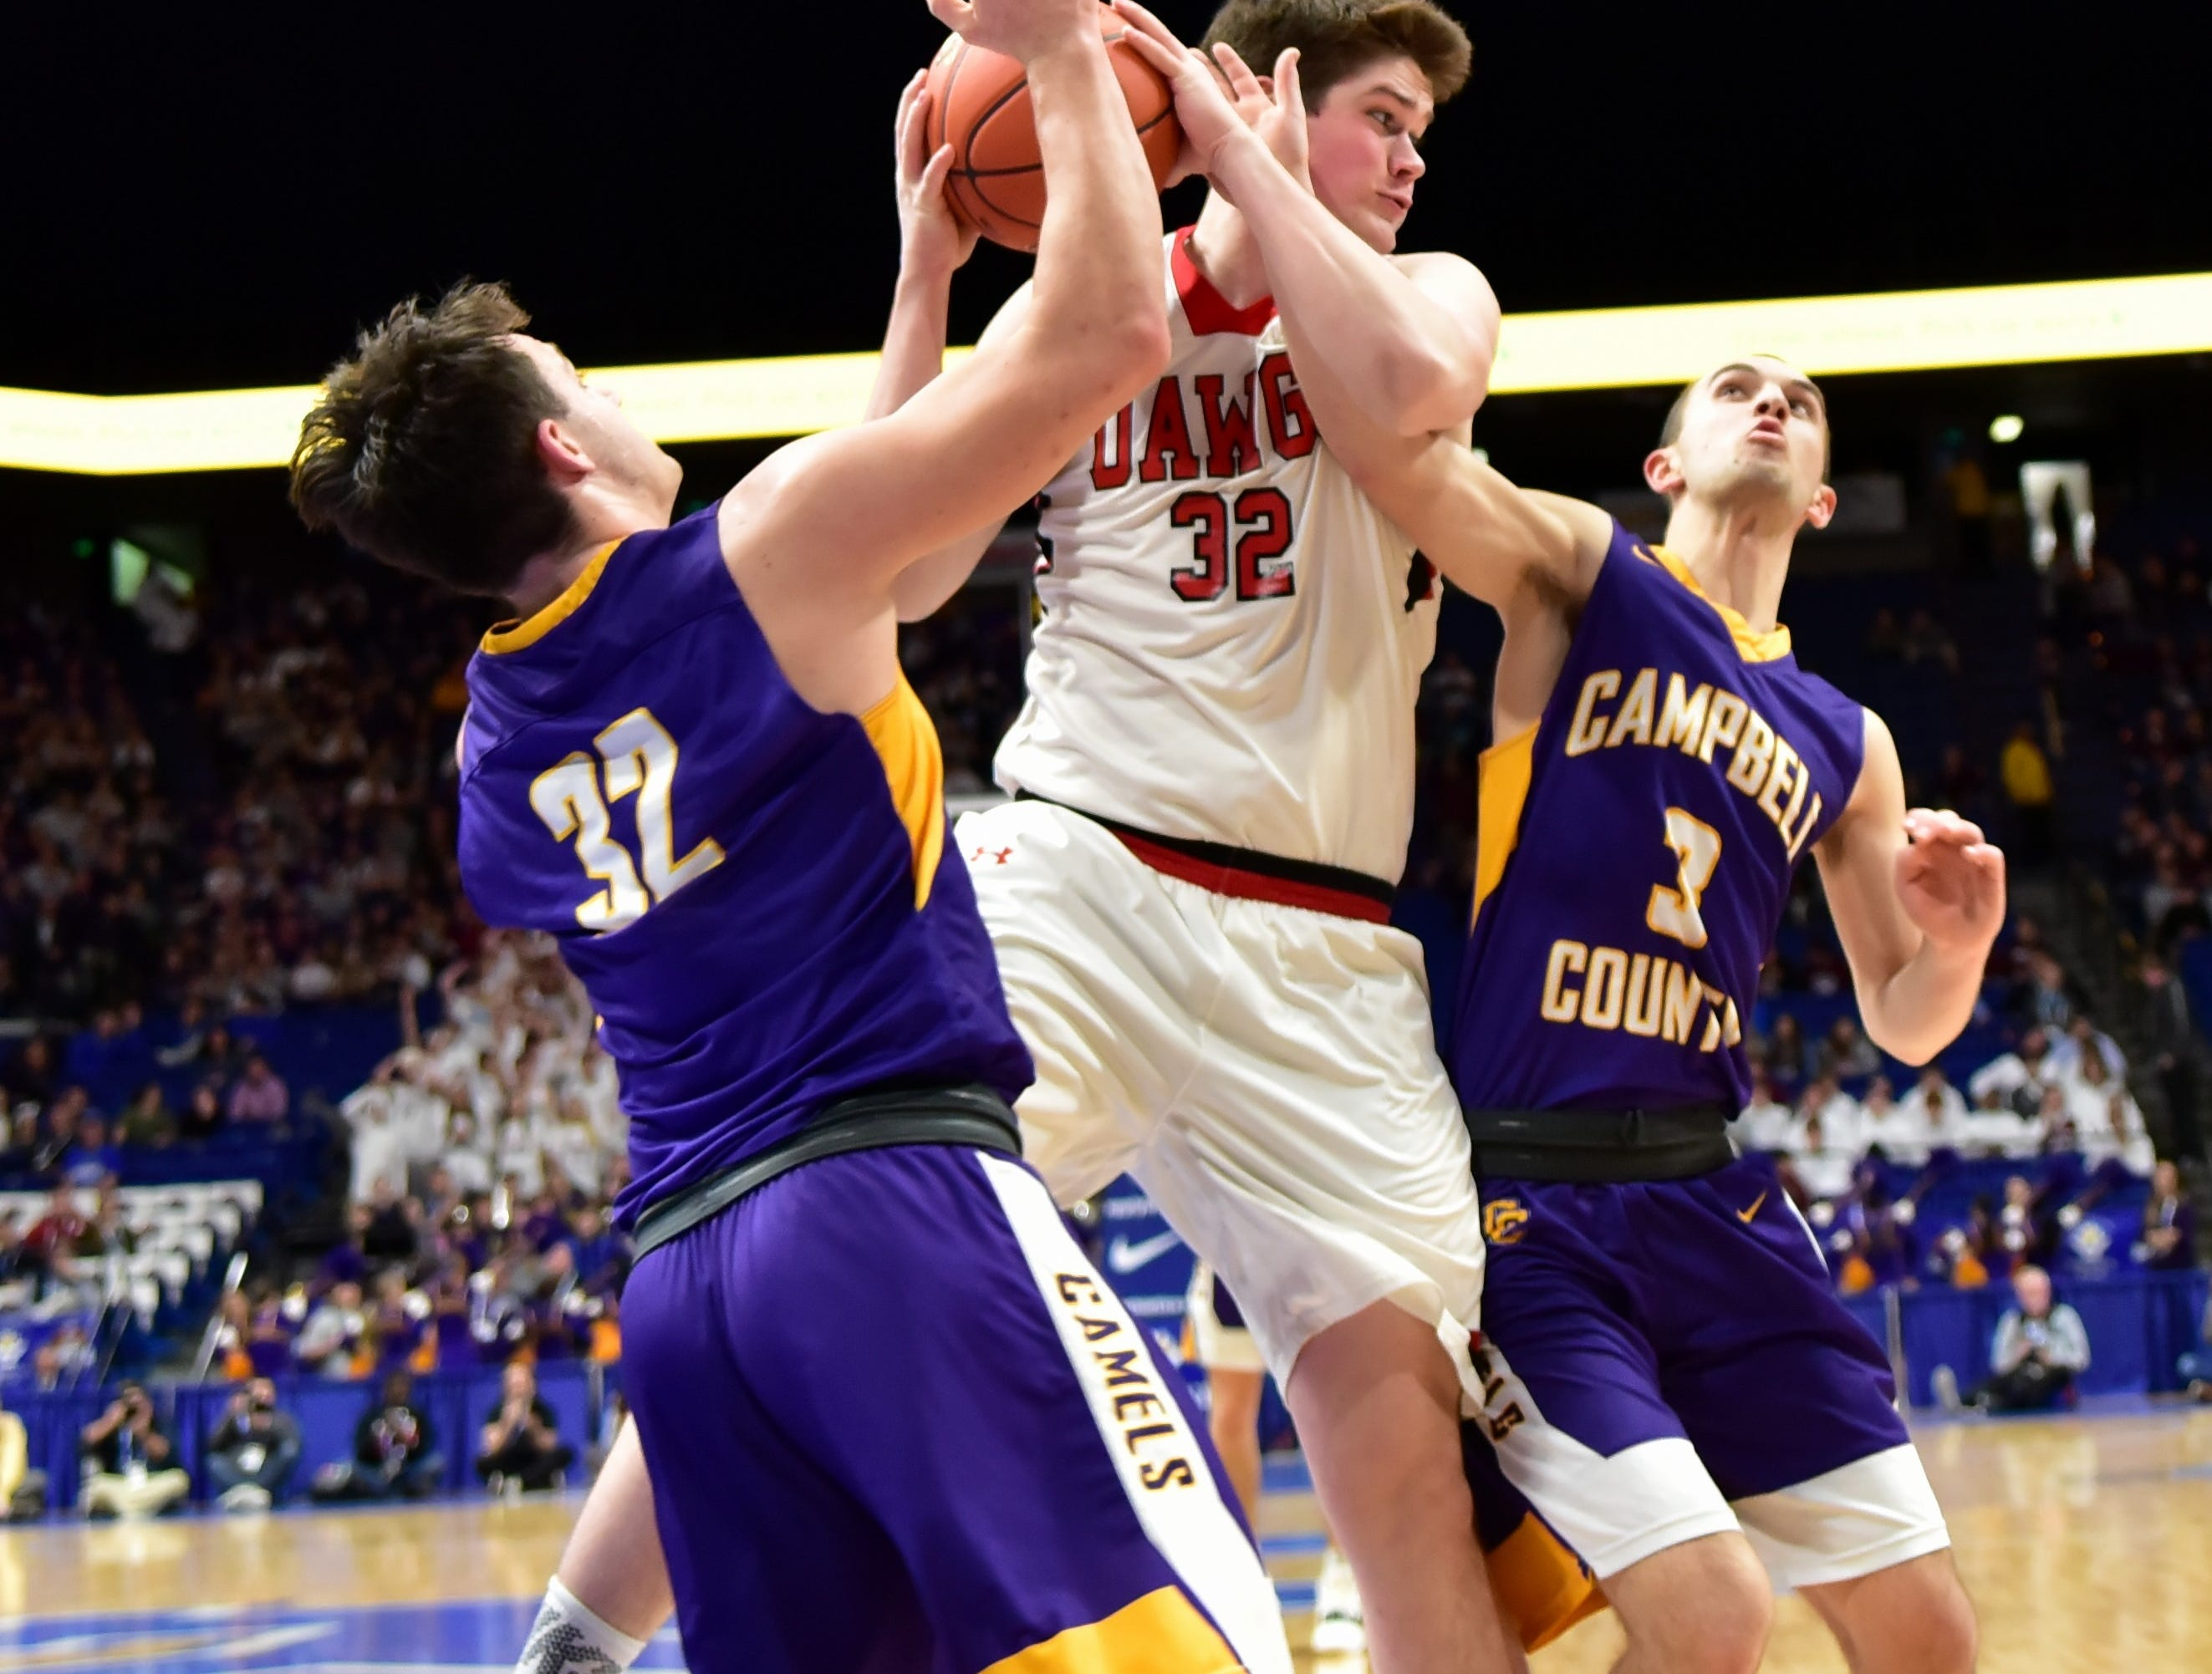 Campbell County's Tanner Lawrence and Noah Wirth press the John Hardin Dawgs hard as the Camels battle in first round action at the KHSAA Sweet 16 Tournament at Rupp Arena in Lexington, KY, March 6, 2019